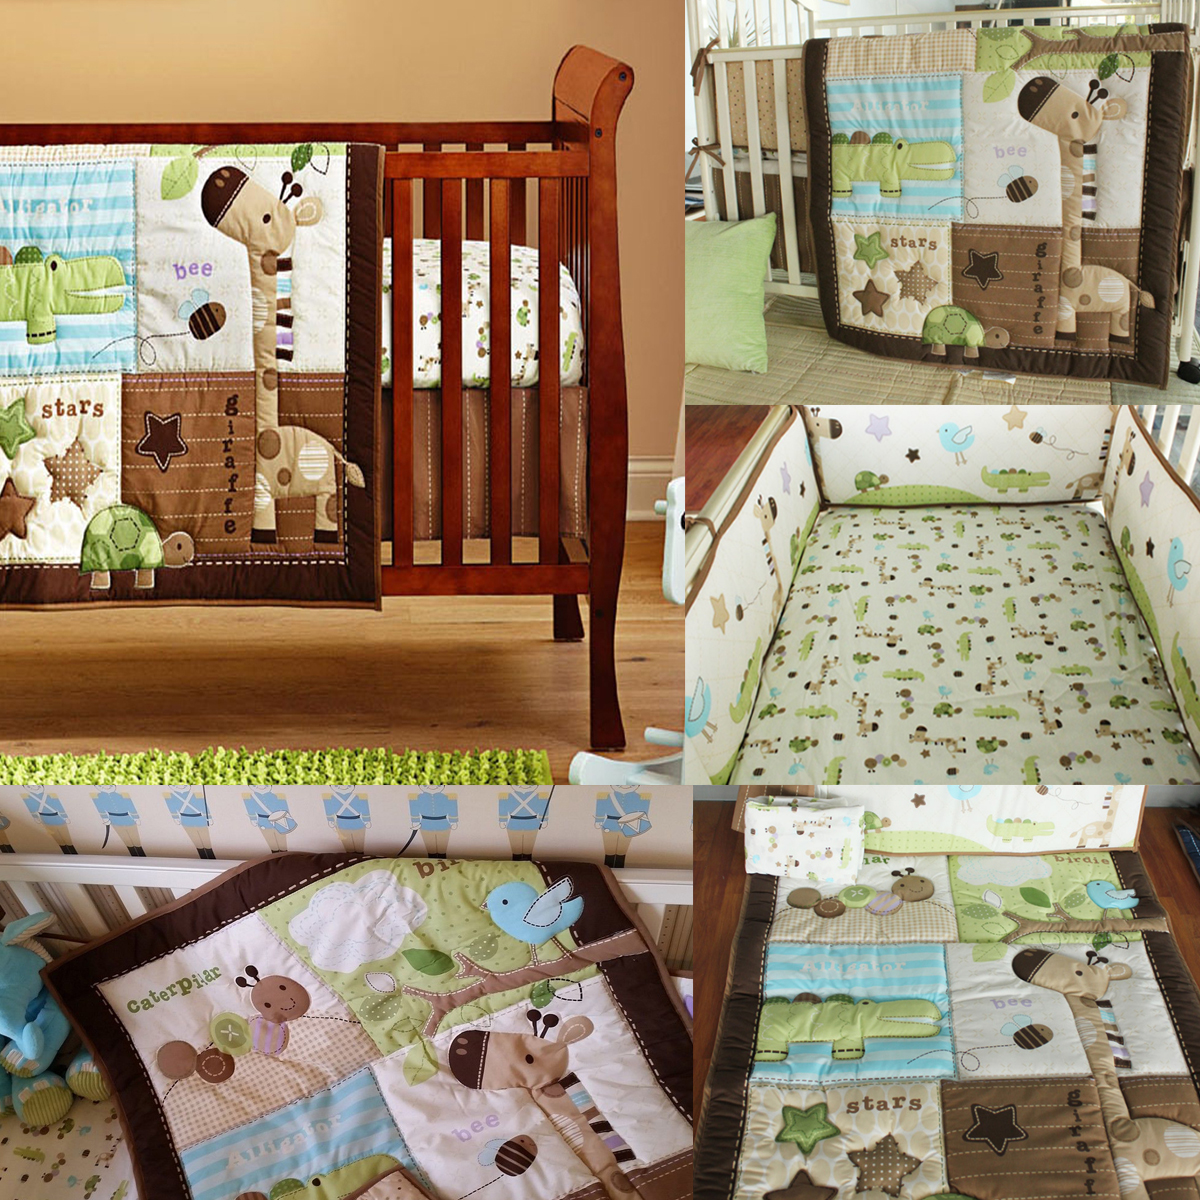 7 Pcs Newborn Baby Bedding Set Baby Crib Bedding Set With Bumper Baby Crib Bumper Baby Cot Sets Kids Bed Bumper ...